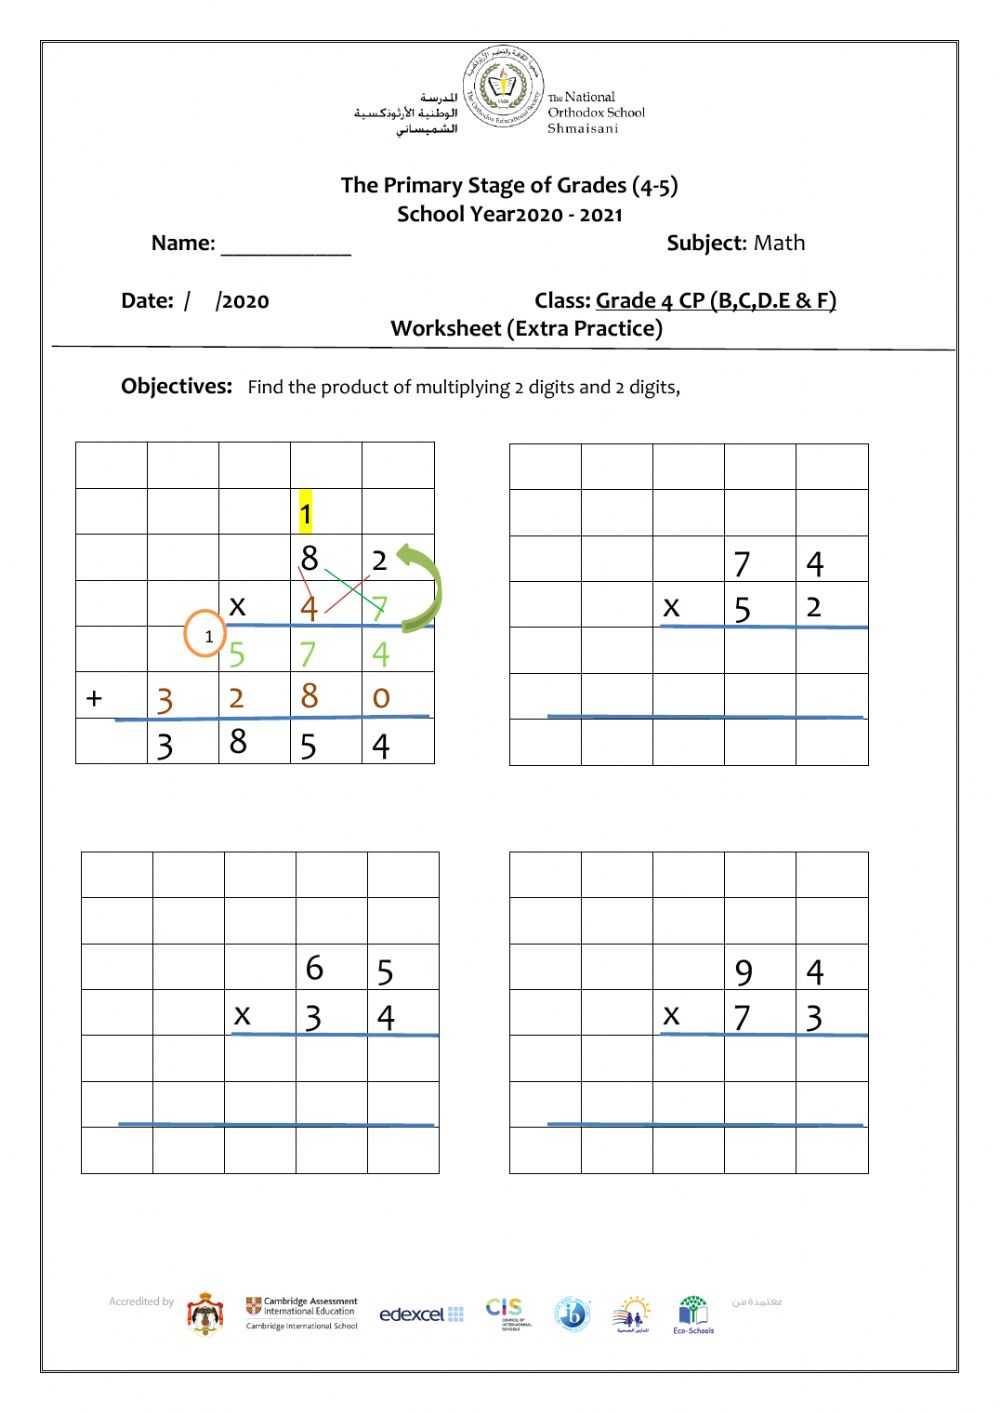 Multiply 2 digits by 2 digits worksheet